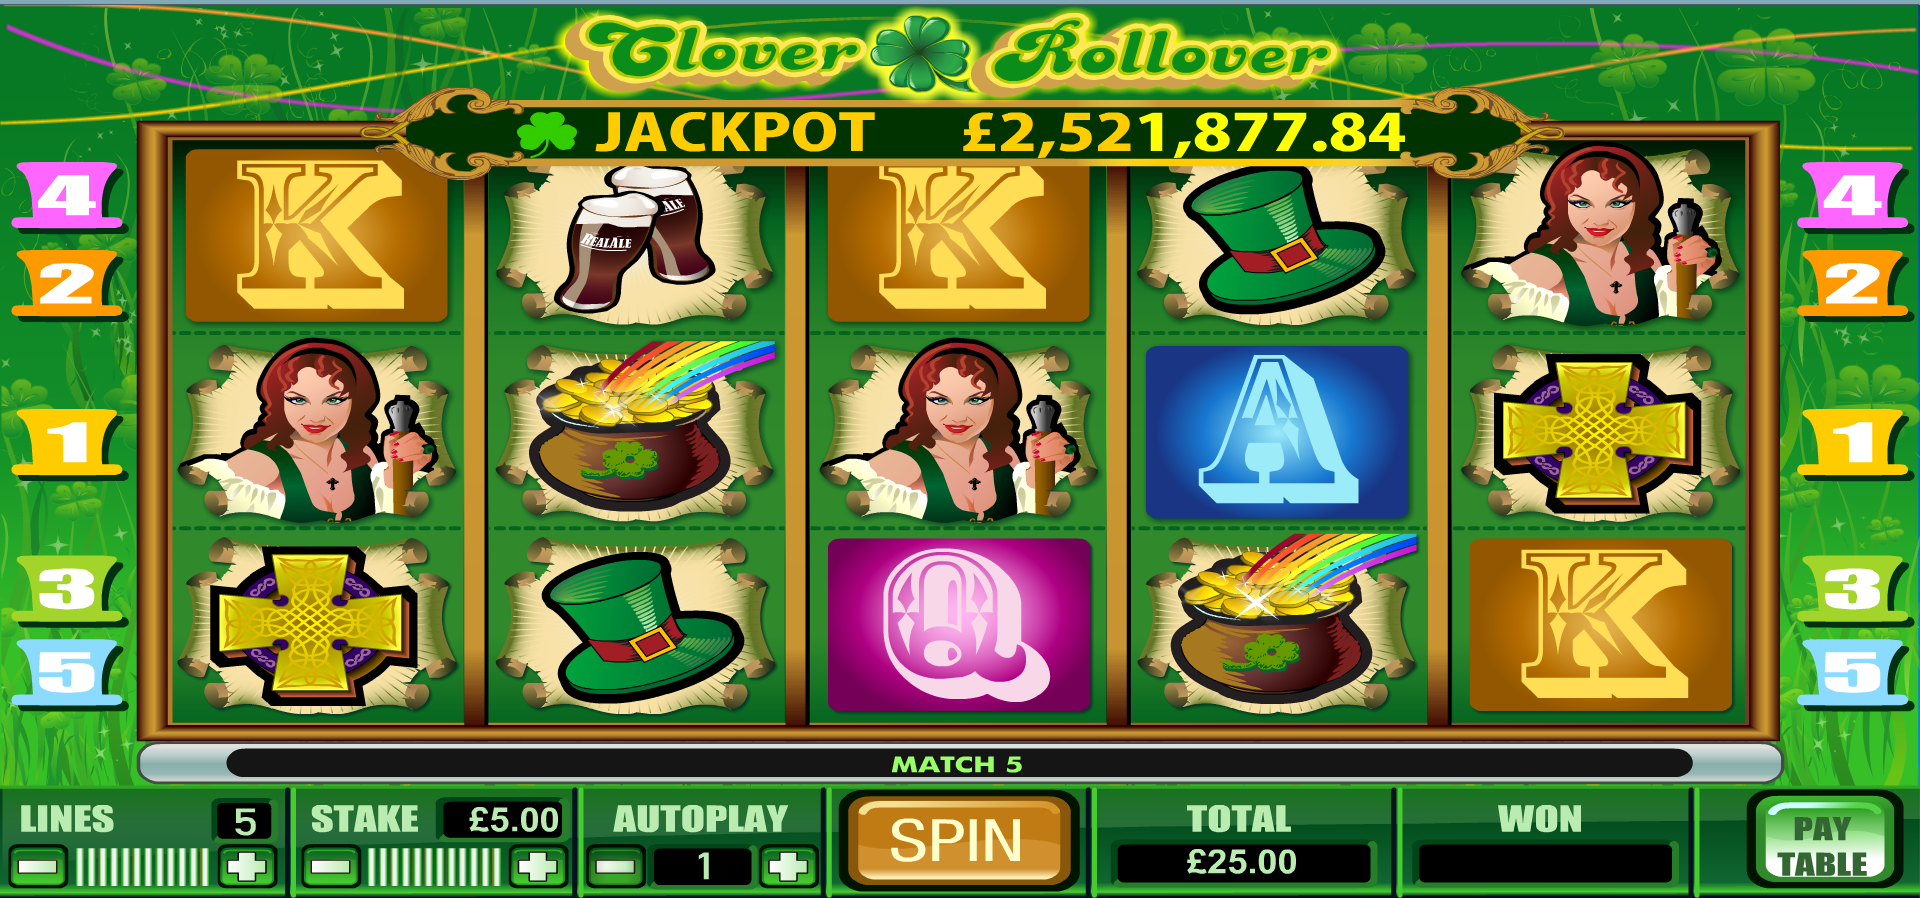 Play Clover Rollover Online | Grosvenor Casinos